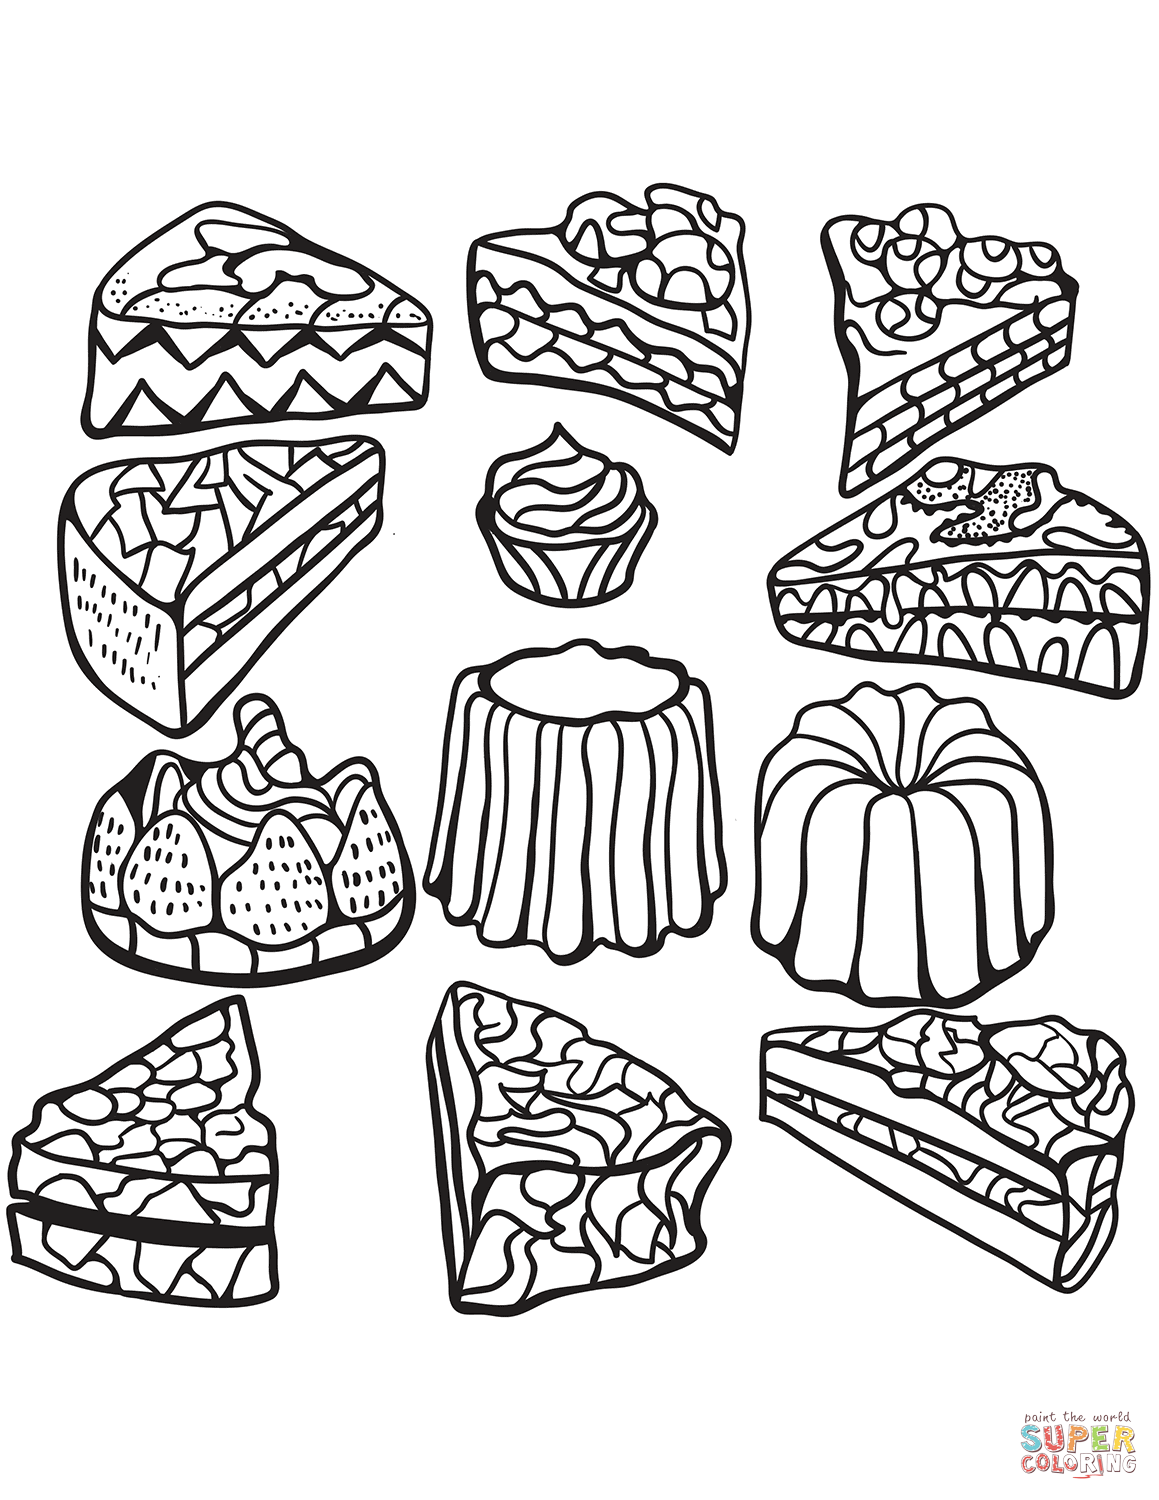 Zentangle Cakes Coloring Page